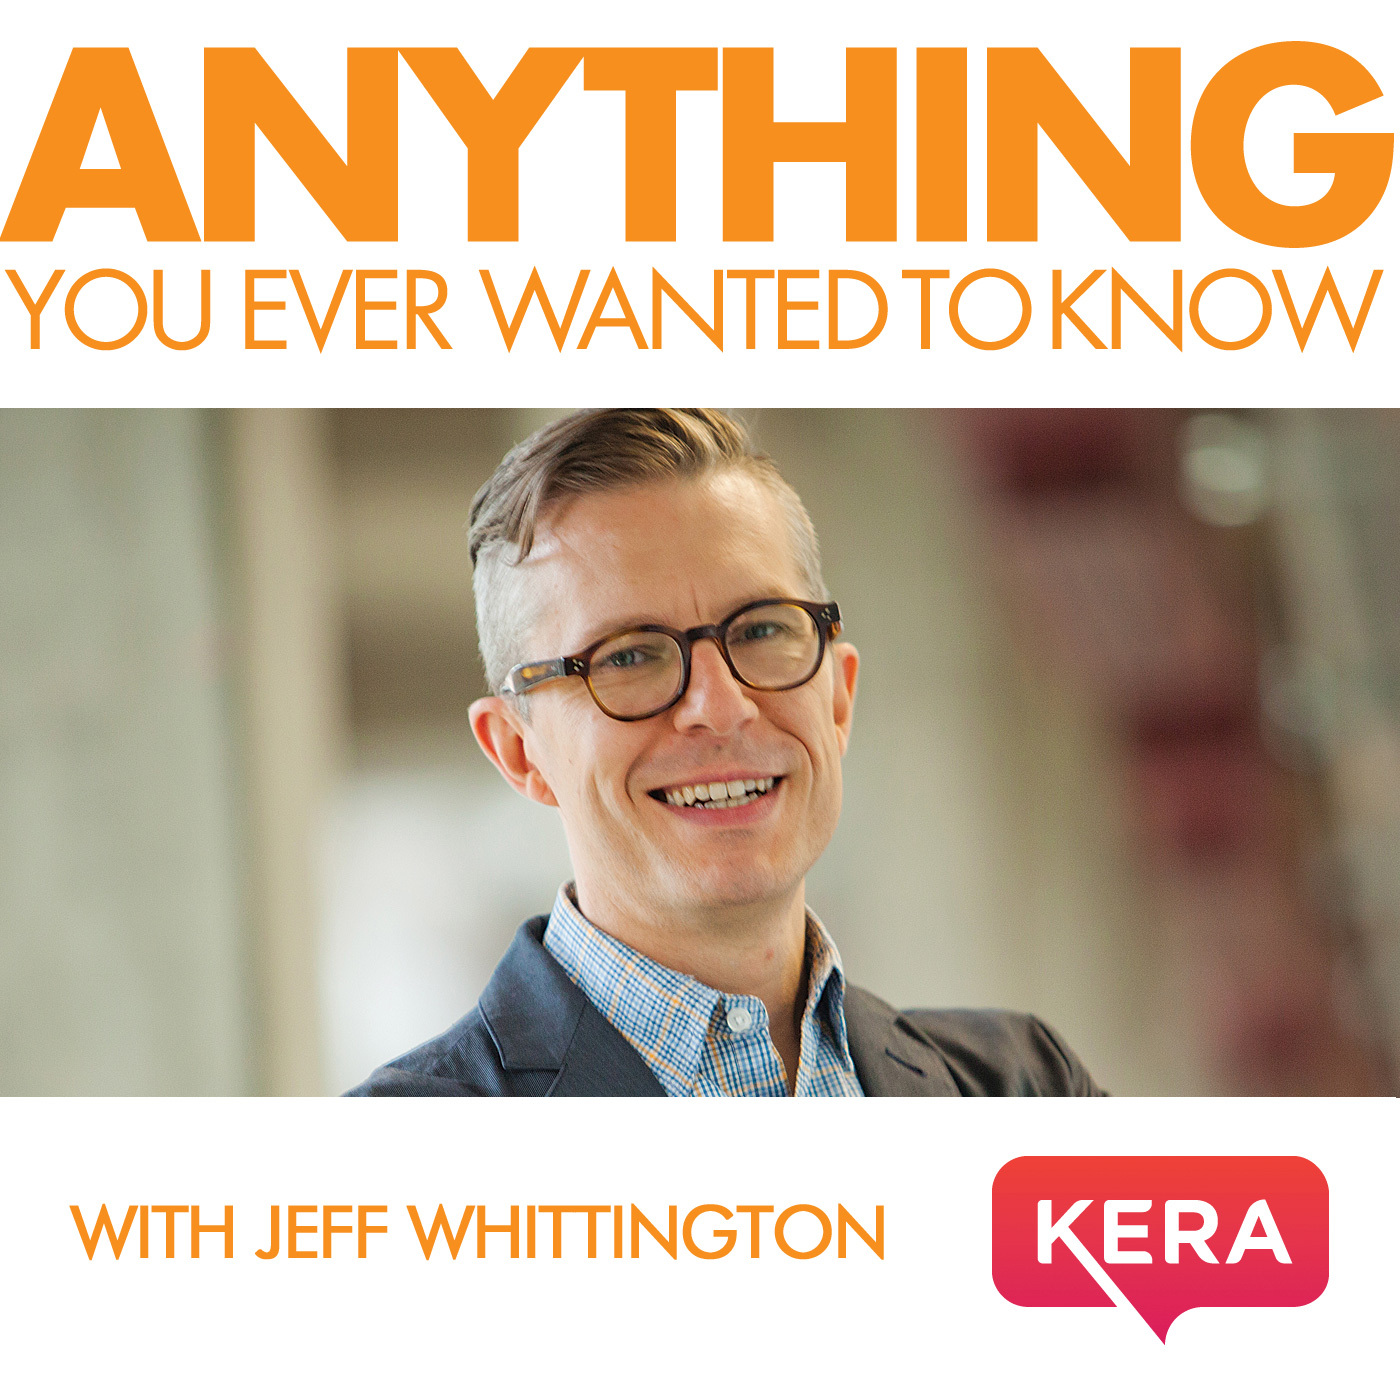 KERA's Anything You Ever Wanted to Know